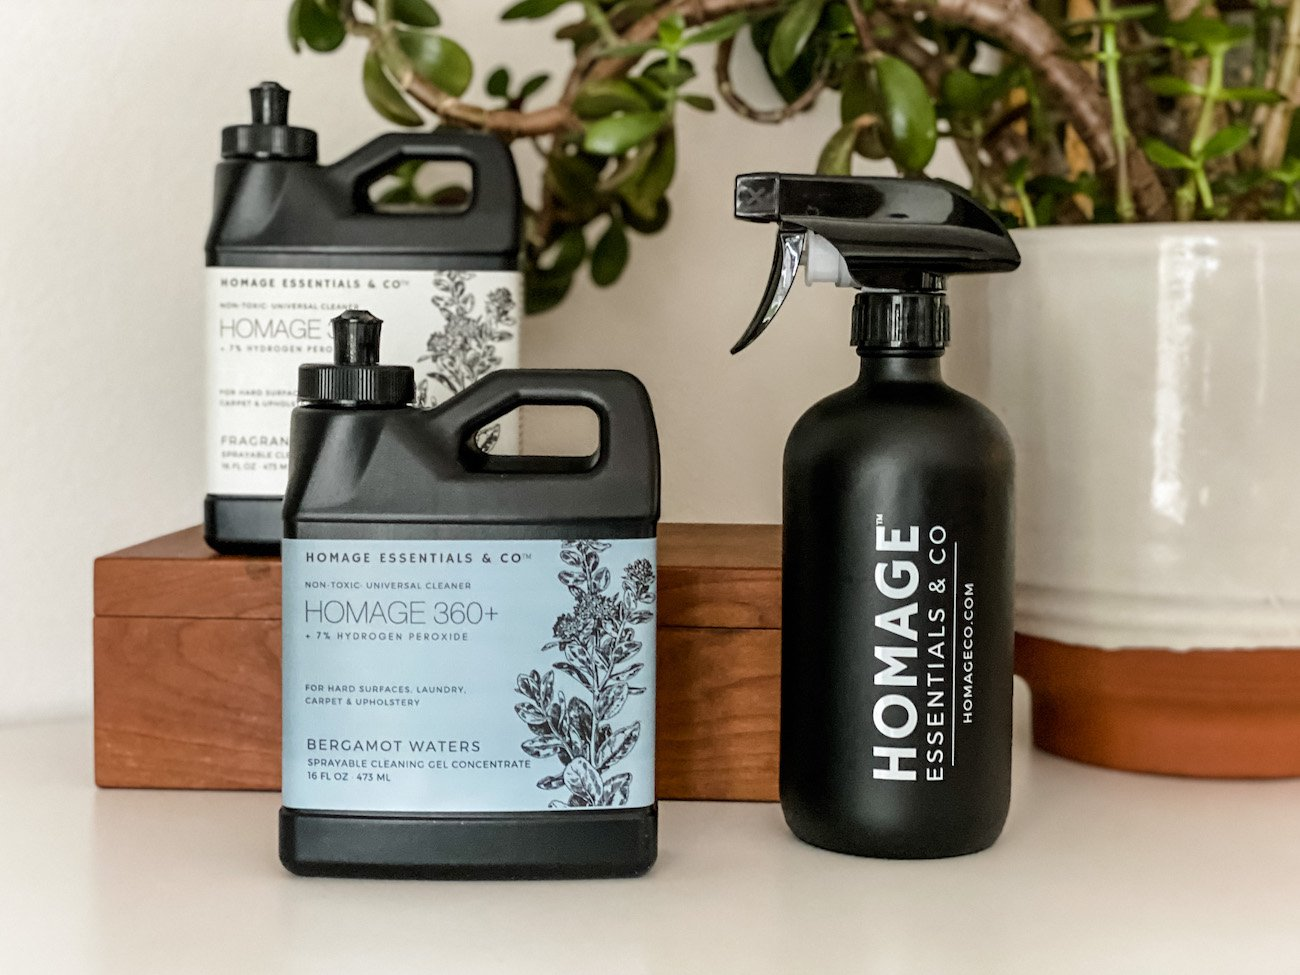 Homage 360+ Sprayable Cleaning Gel Concentrate Bundle